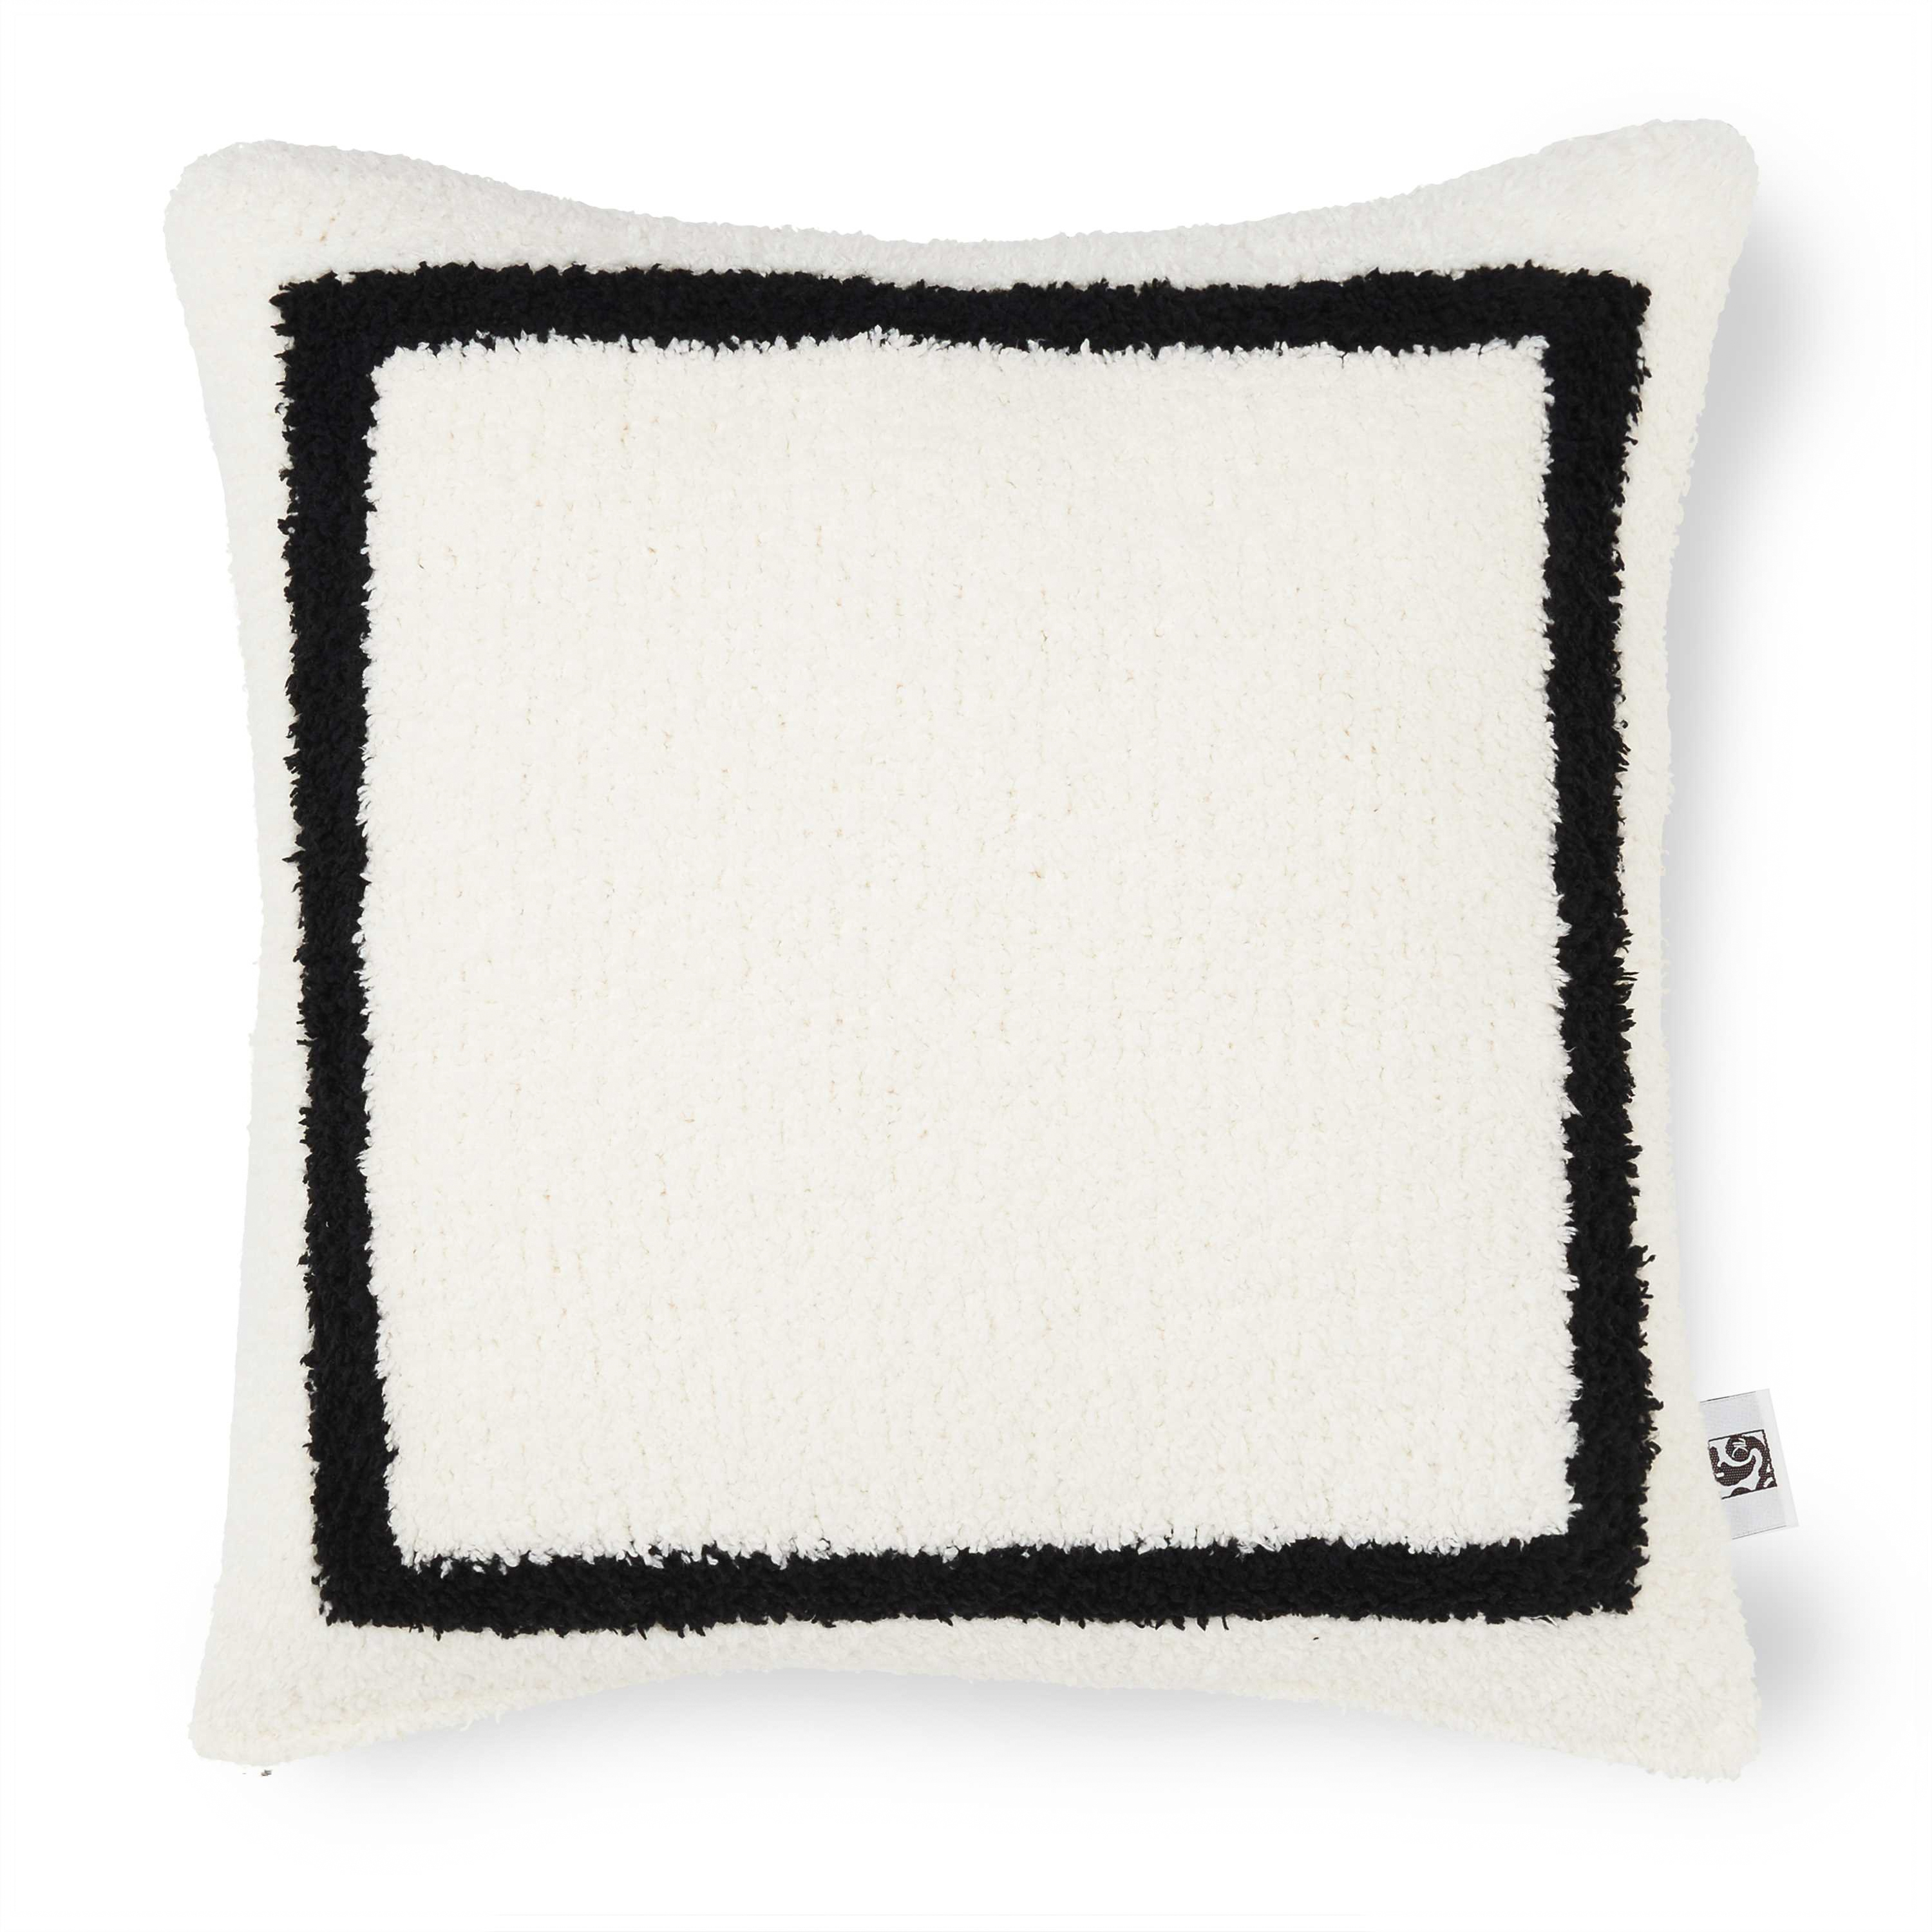 FRAME CUSHION COVER